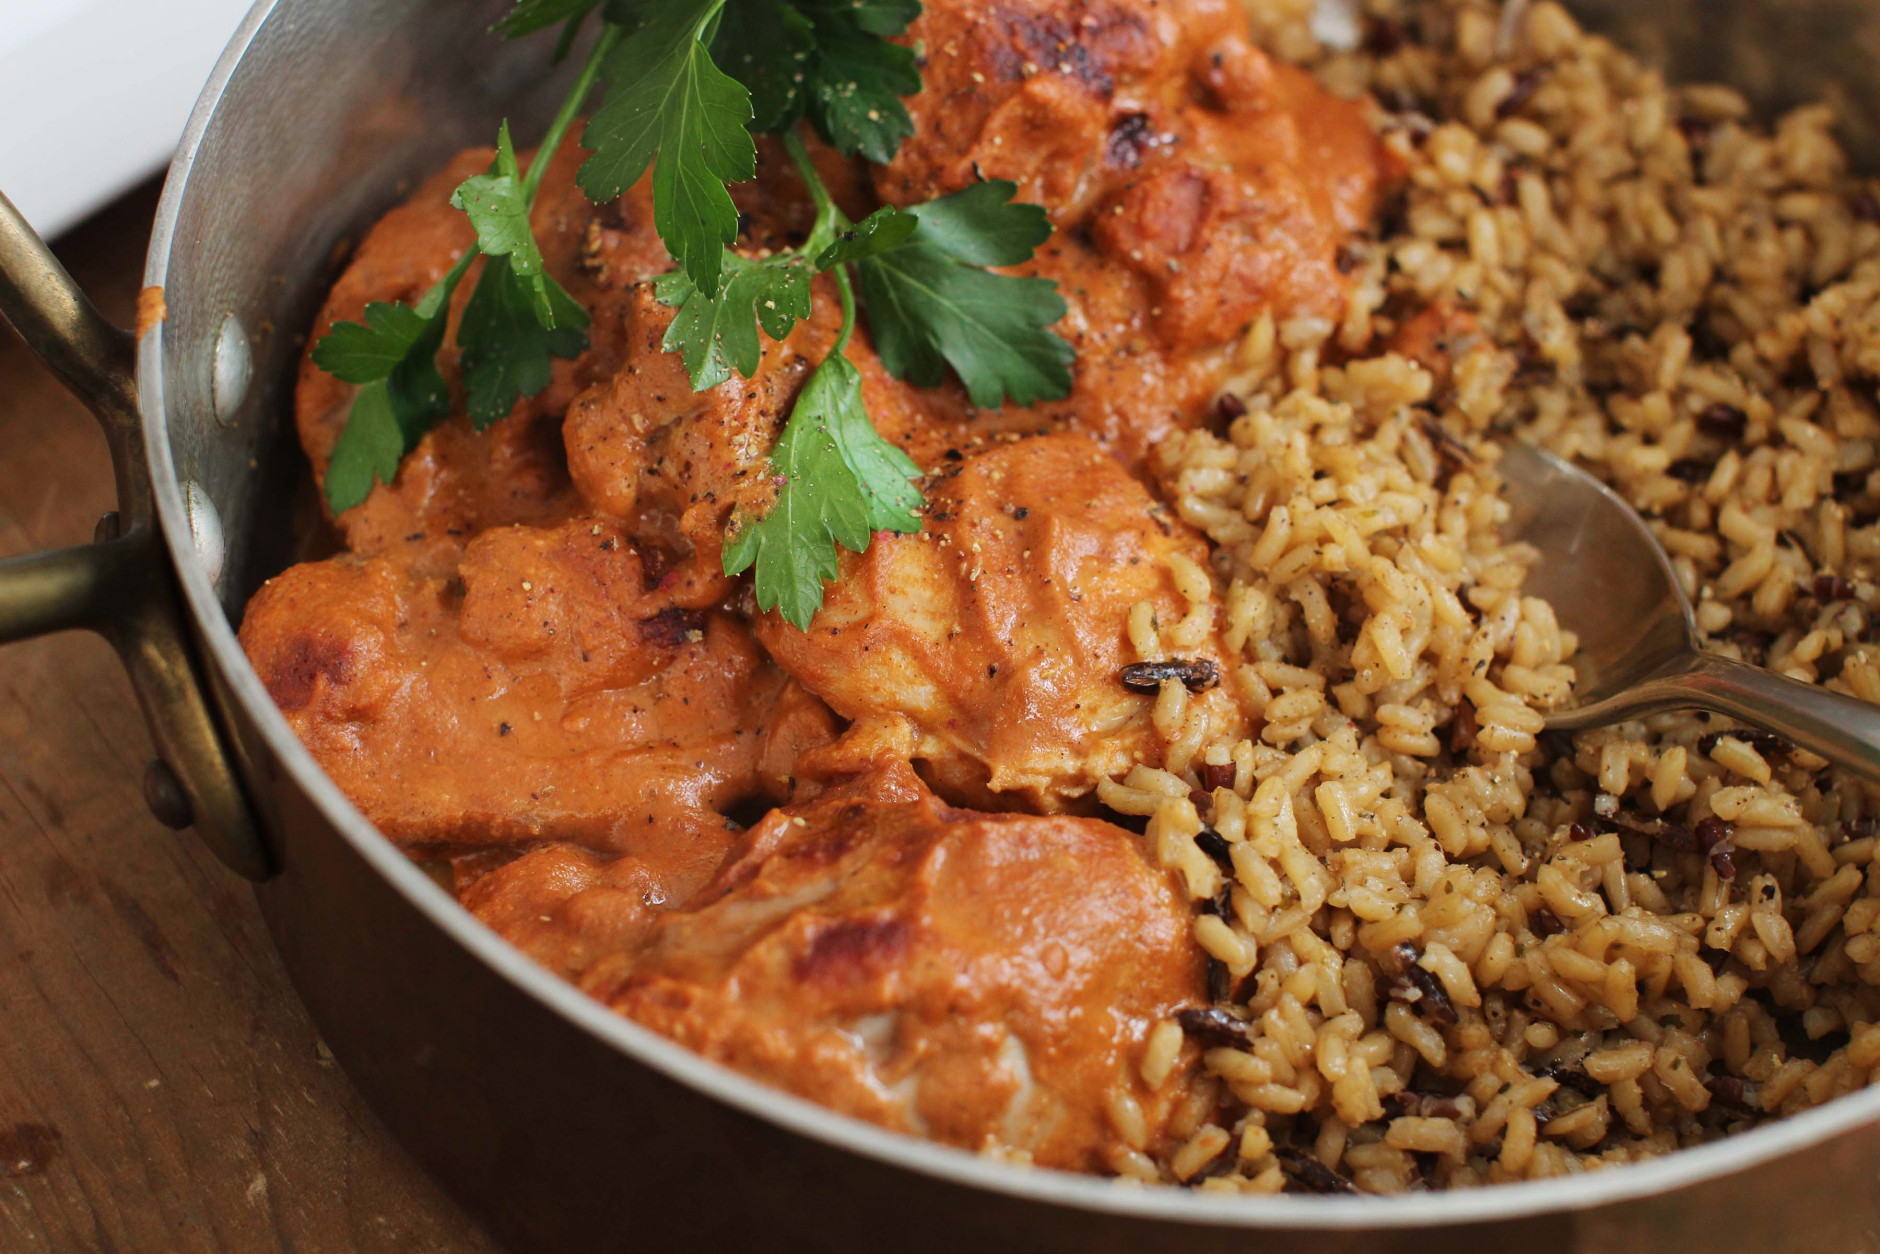 This Feb. 15, 2016 photo shows chicken mole served with a side of wild and brown rice in Concord, N.H. Mole is a style of Mexican sauces often served with meats. It usually is made from ground nuts, chocolate or cocoa and a variety of seasonings. (AP Photo/Matthew Mead)